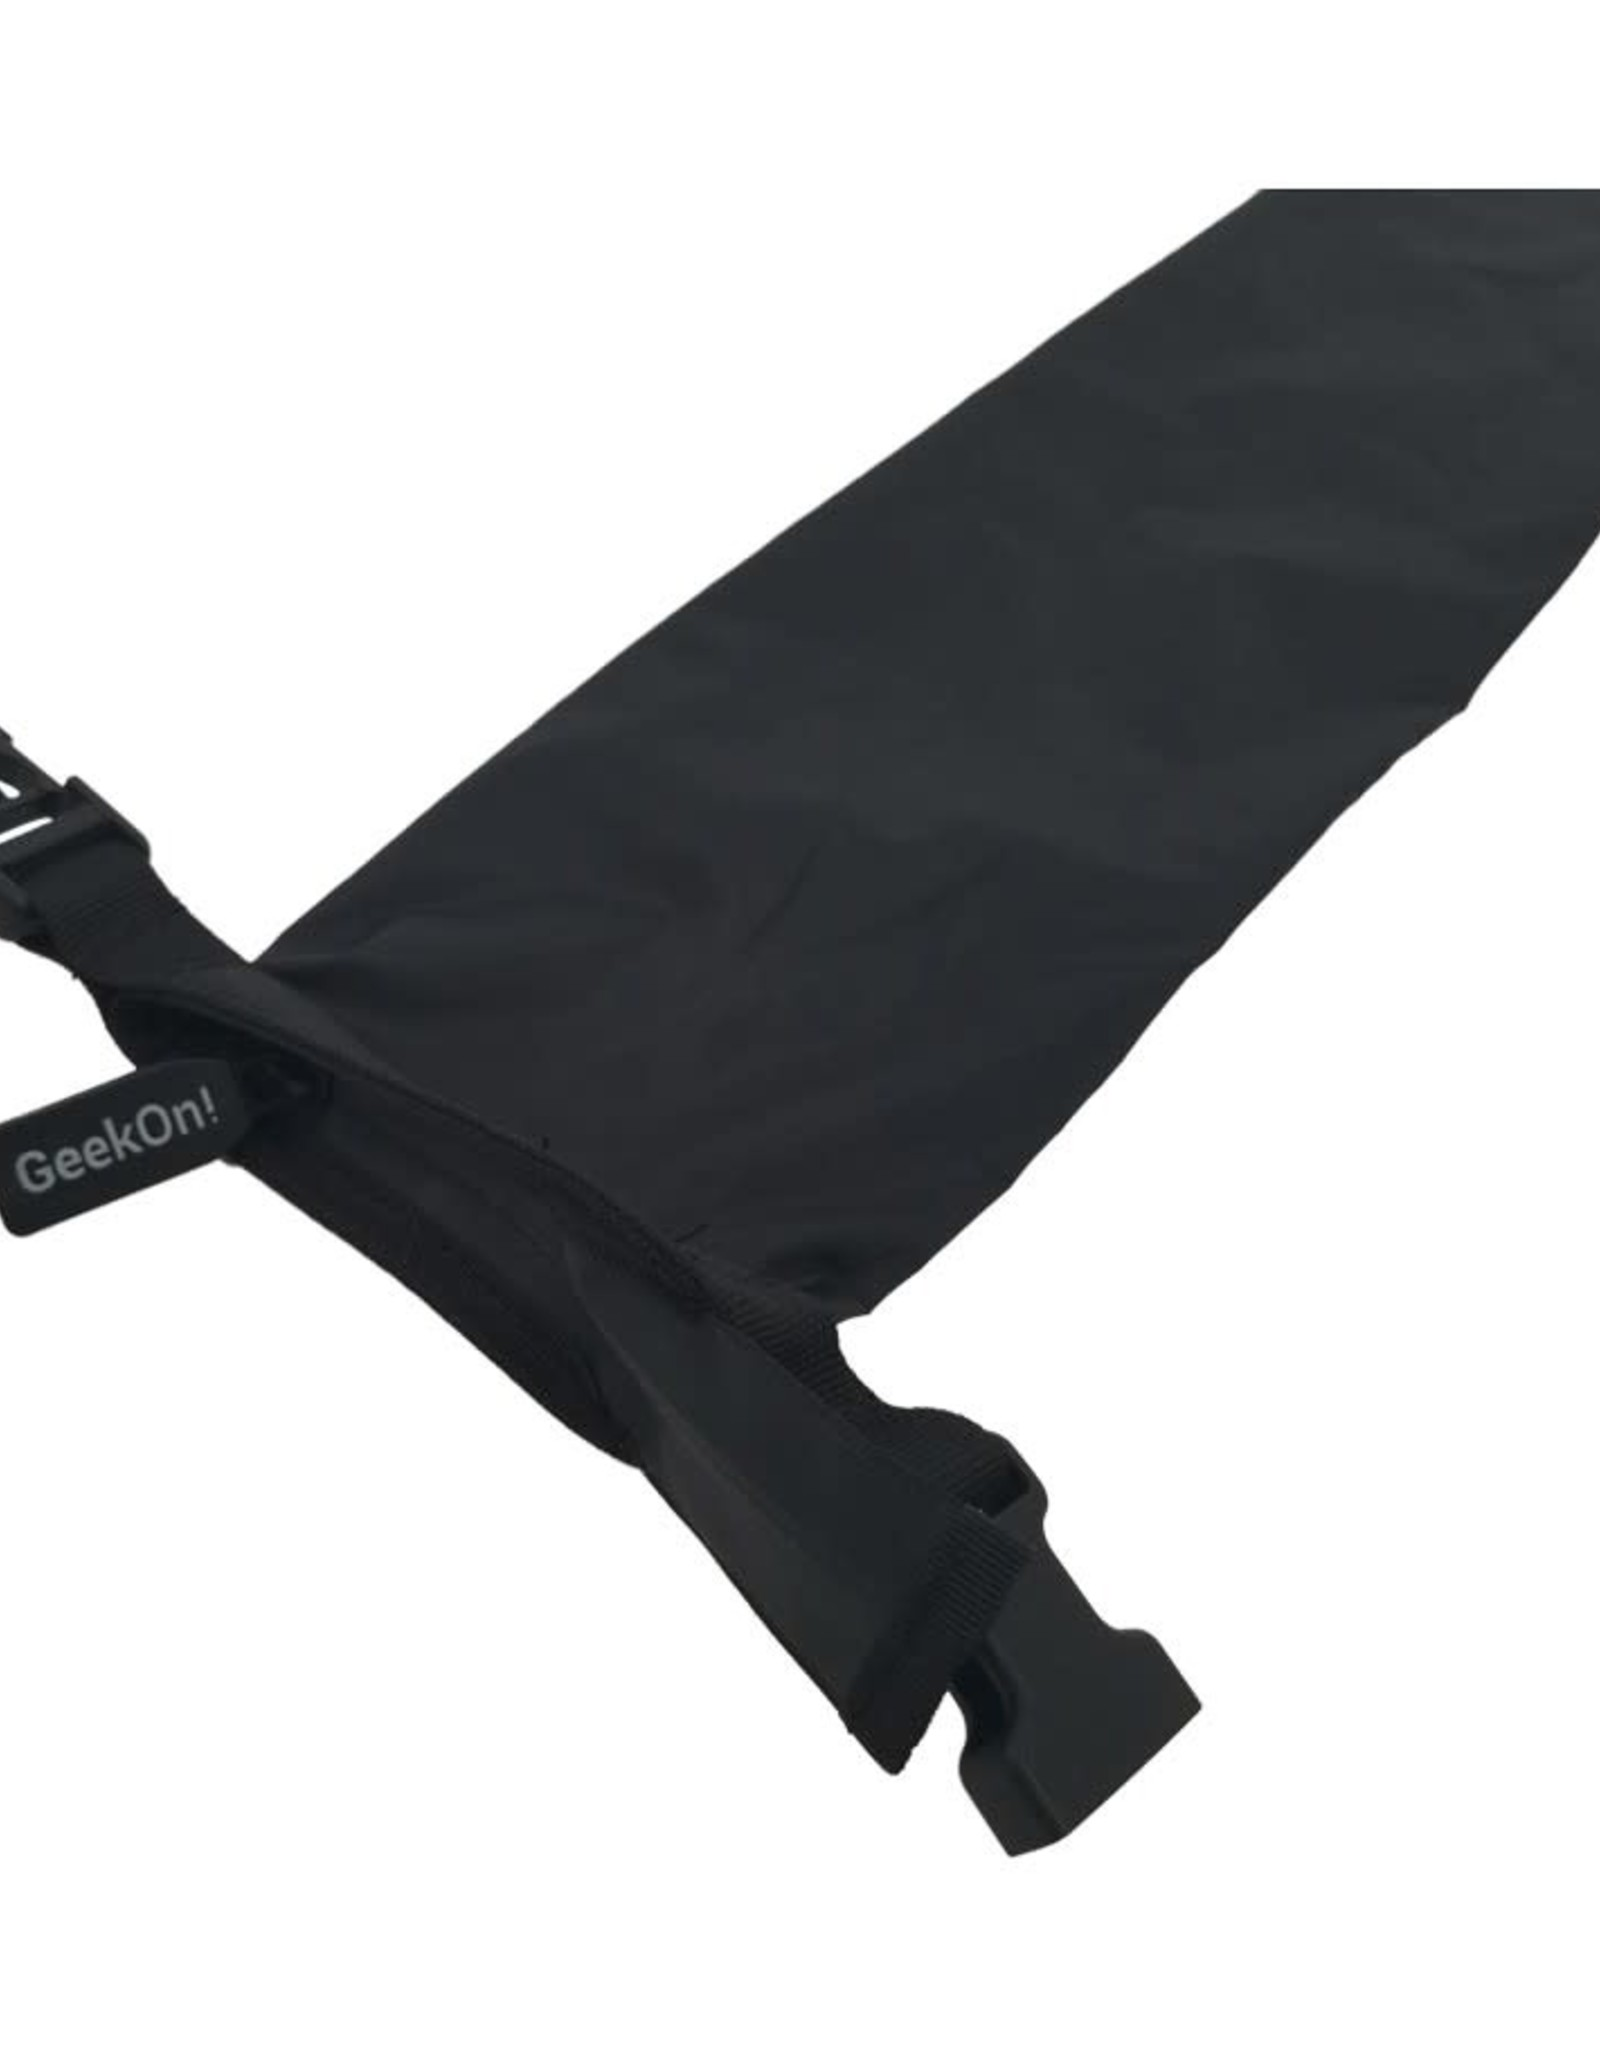 Geek On Playmat Bag: Drybag of Doom 36""